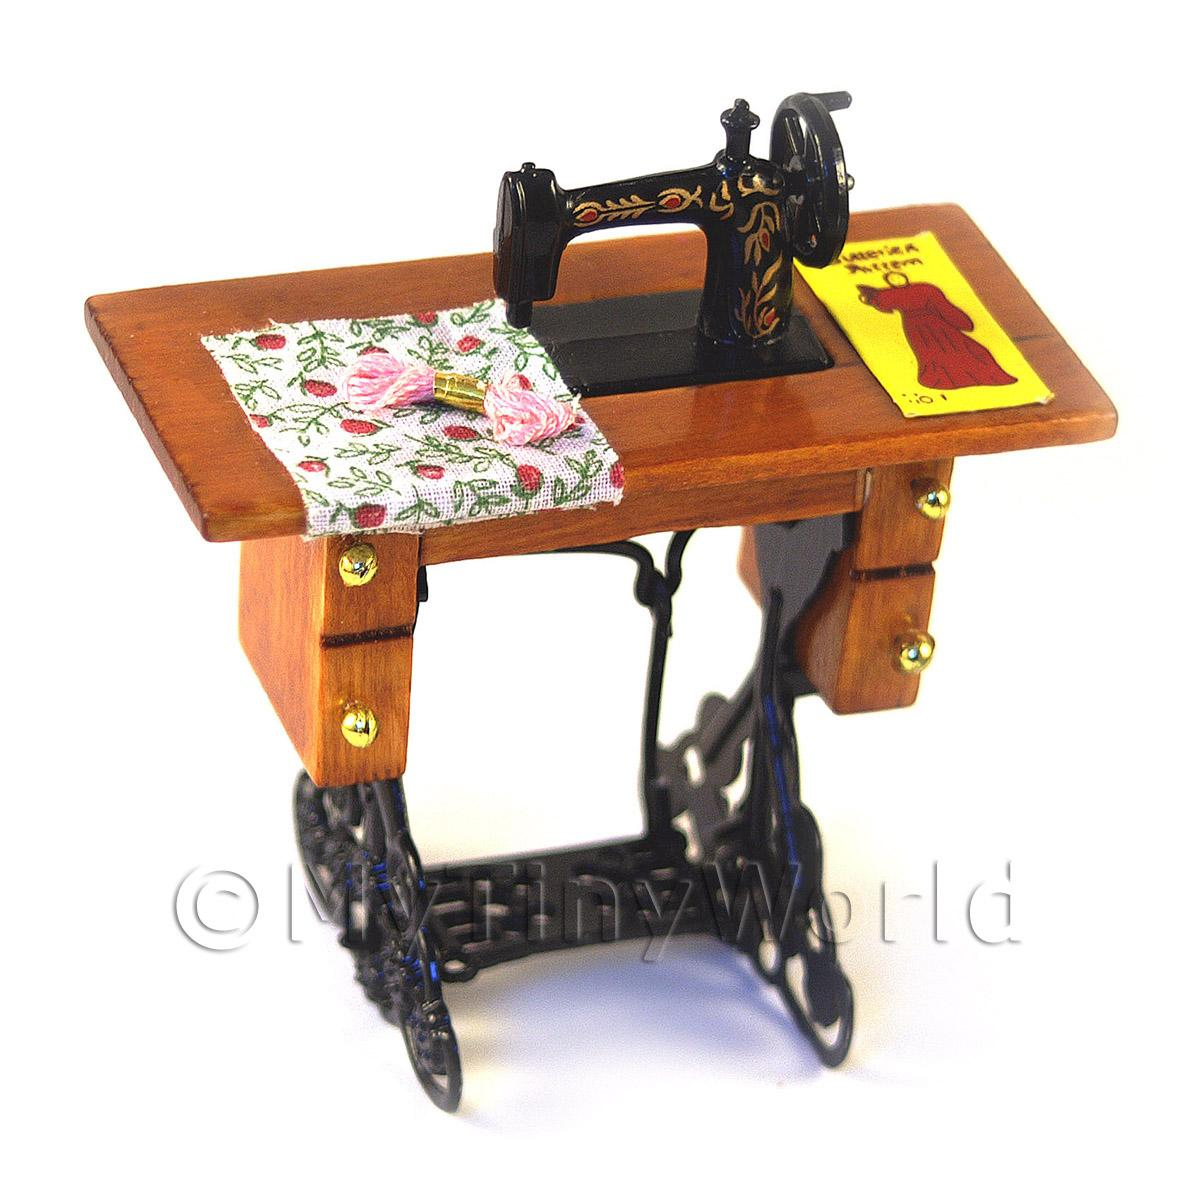 Dolls House Miniature Sewing Machine, Table And Accessories